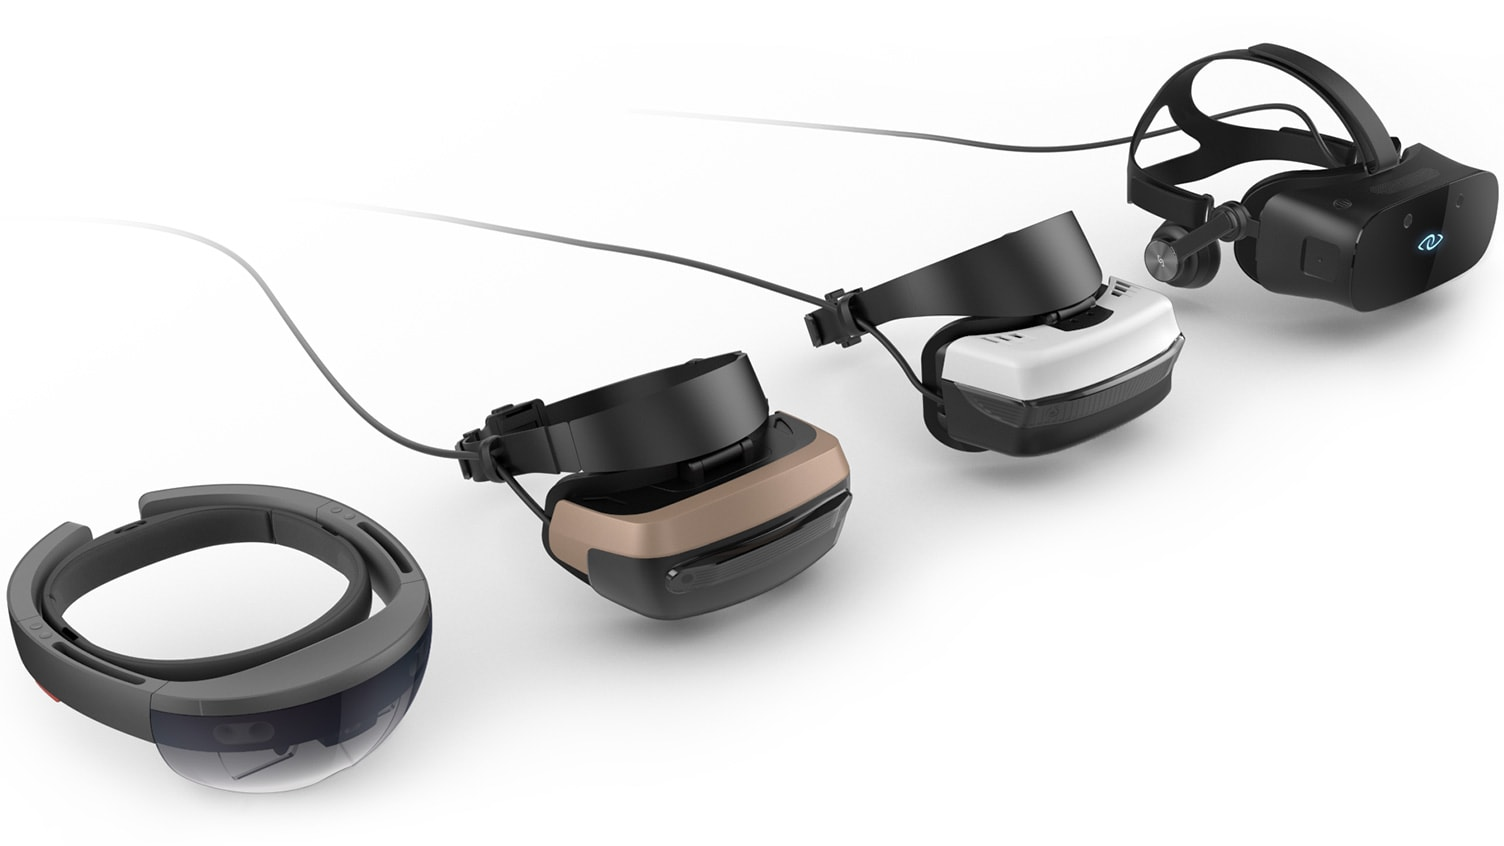 Several virtual reality and mixed reality headsets, including HoloLens, arranged side by side